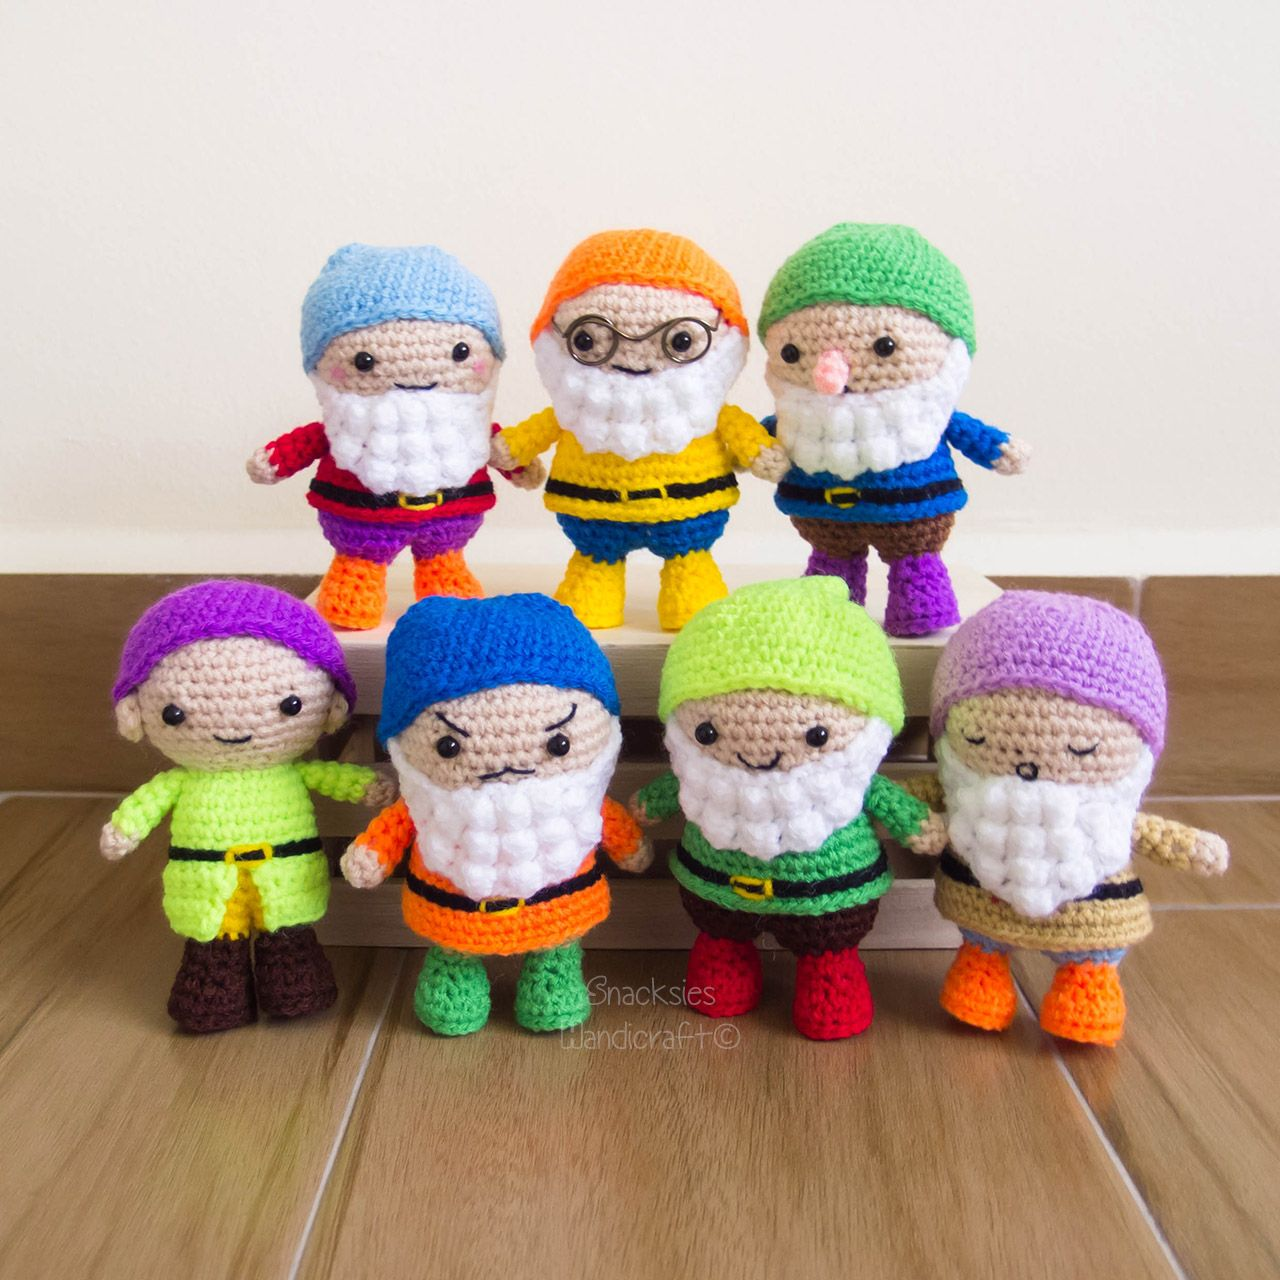 Knitting Patterns For Disney Toys : My Favorite FREE Amigurumi Crochet Patterns Projects to Try Pinterest A...